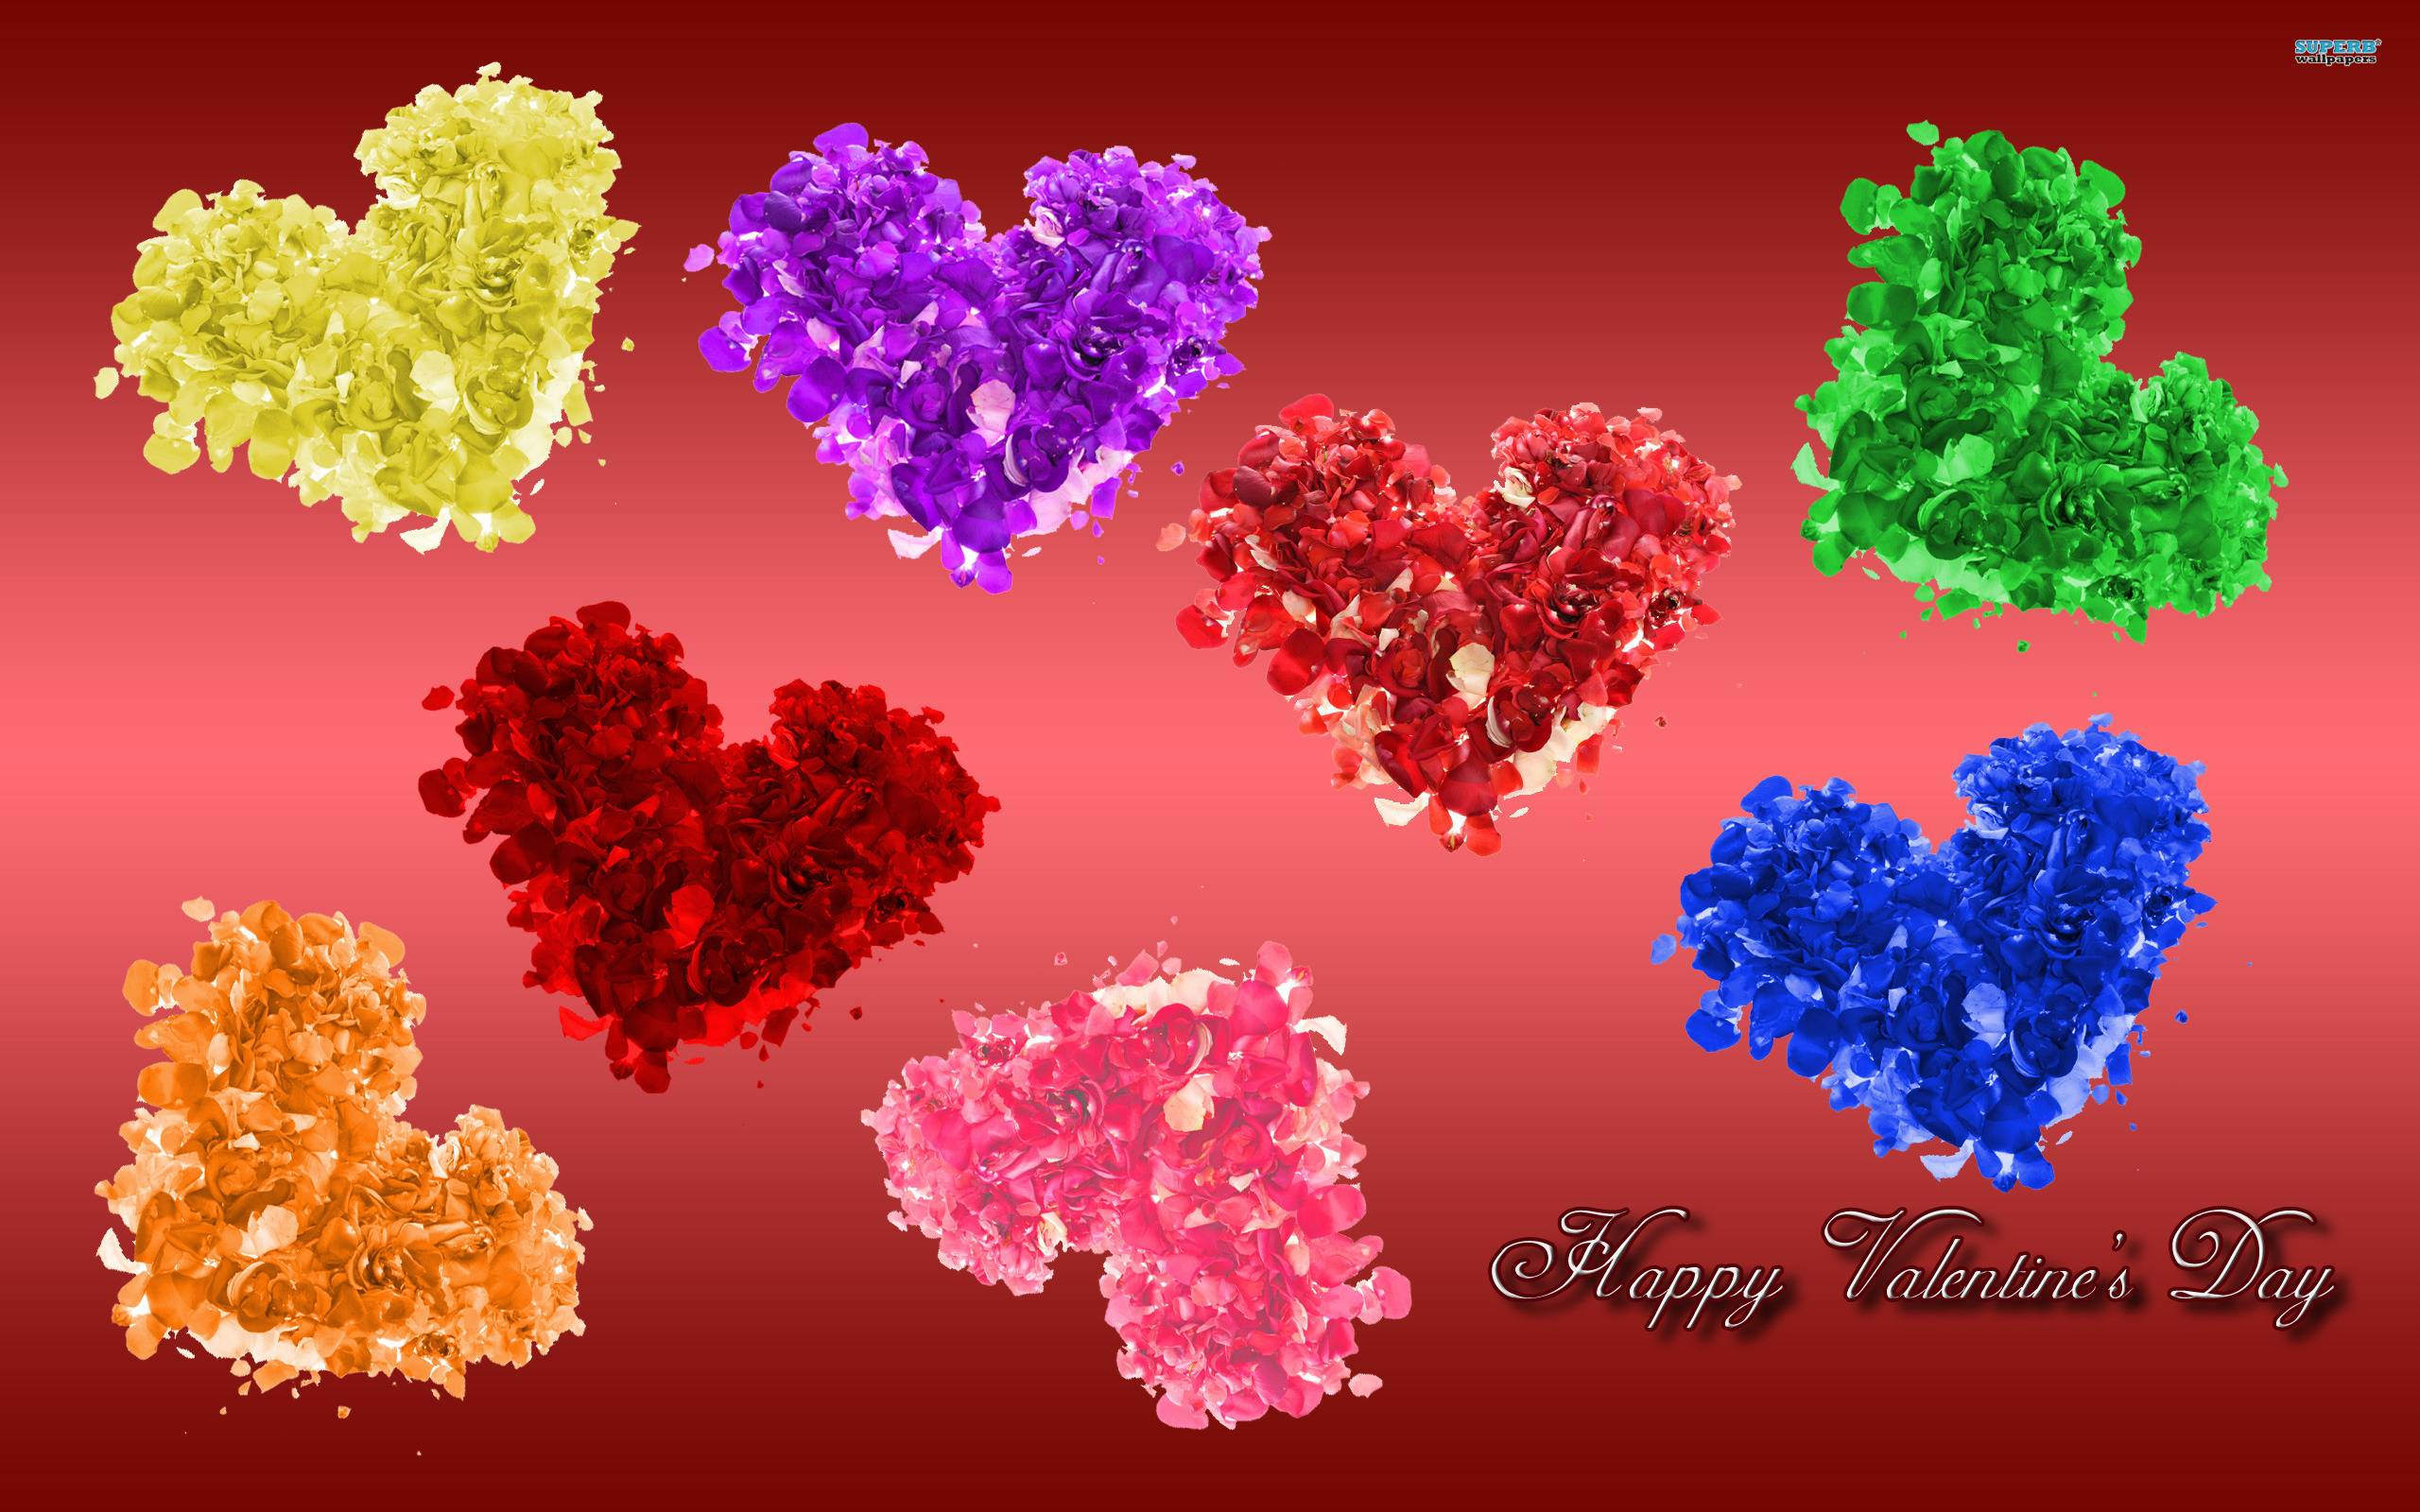 Free valentines desktop wallpapers wallpaper cave - Cute valentines backgrounds ...